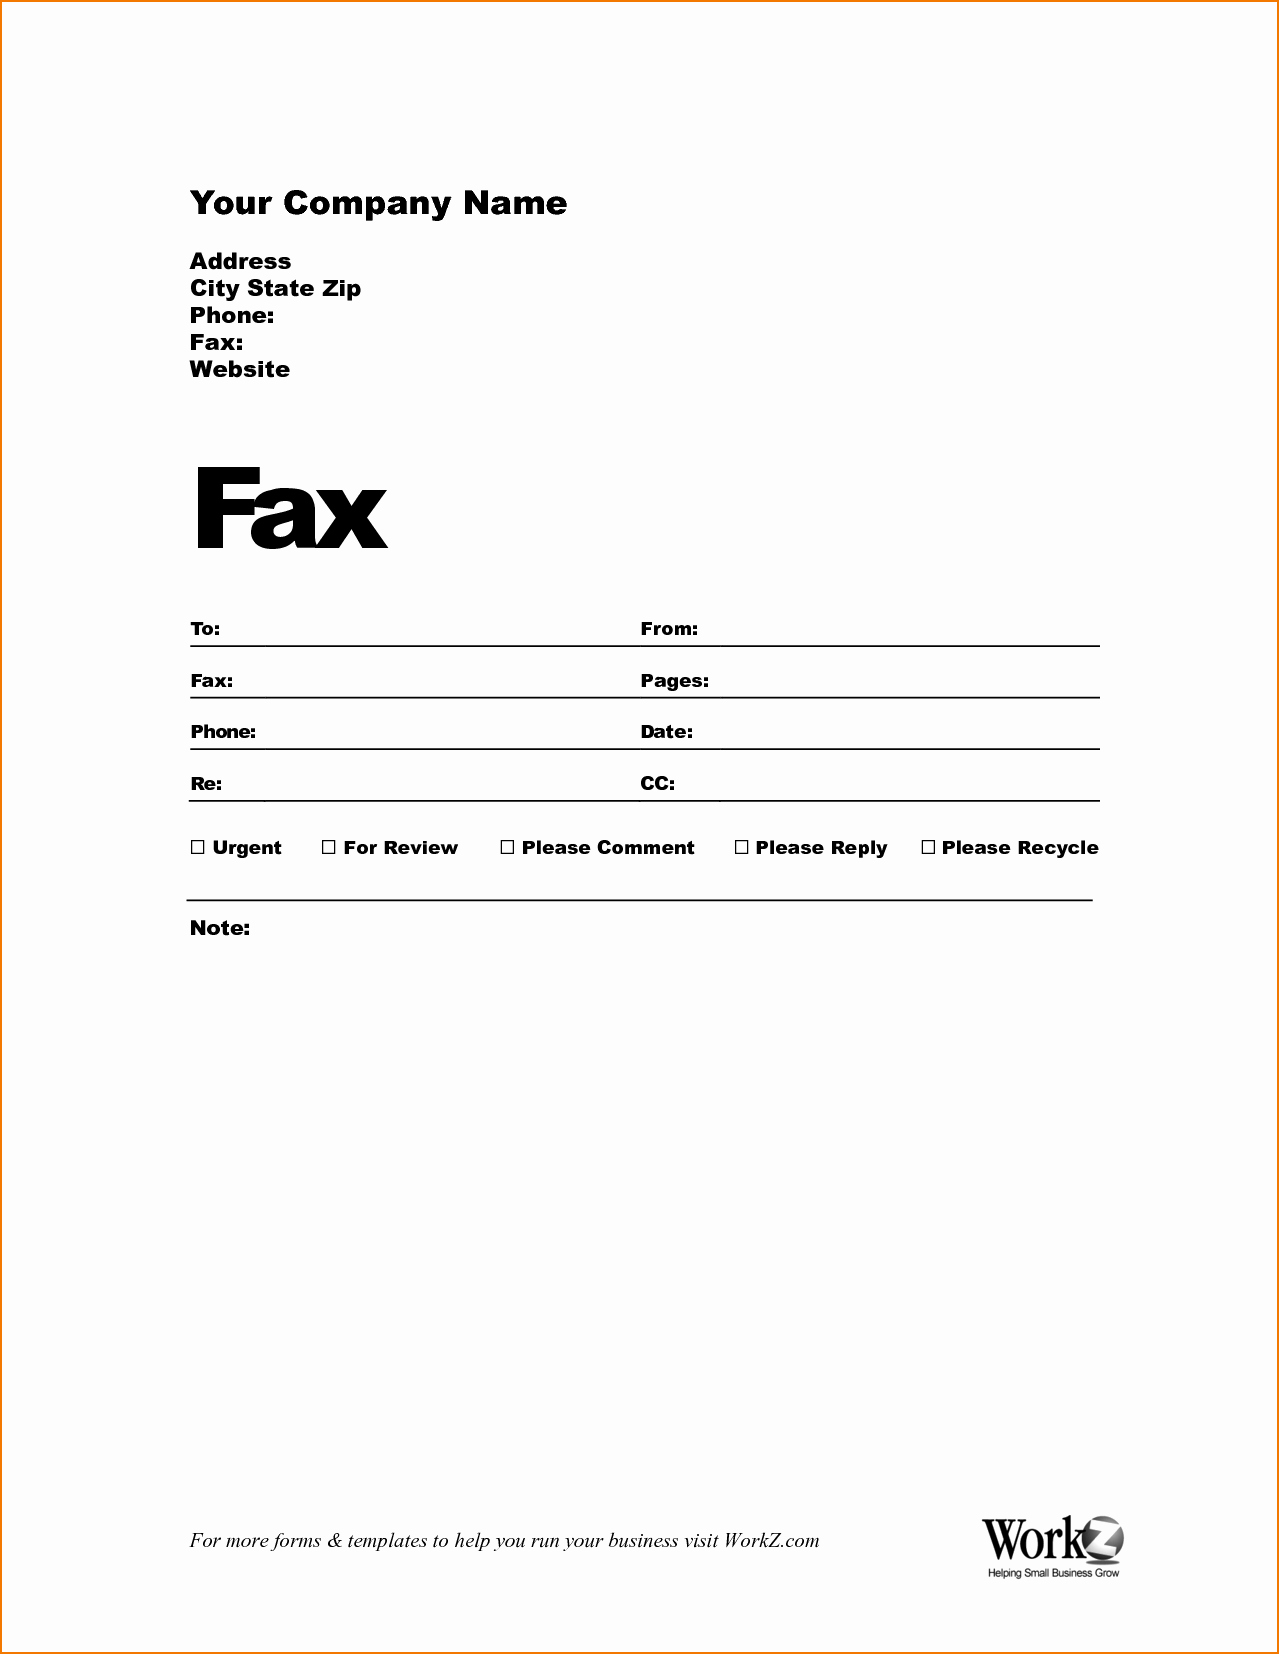 Sample Of Fax Cover Sheets Best Of 5 Fax Cover Sample